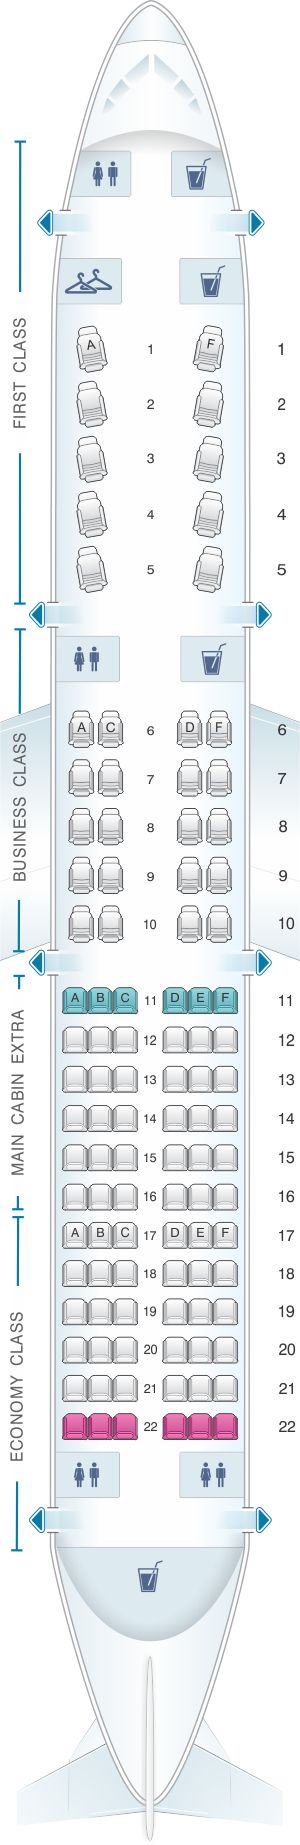 The Best Airbus A Seating Chart Ideas On Pinterest Air - Us airways a321 seat map